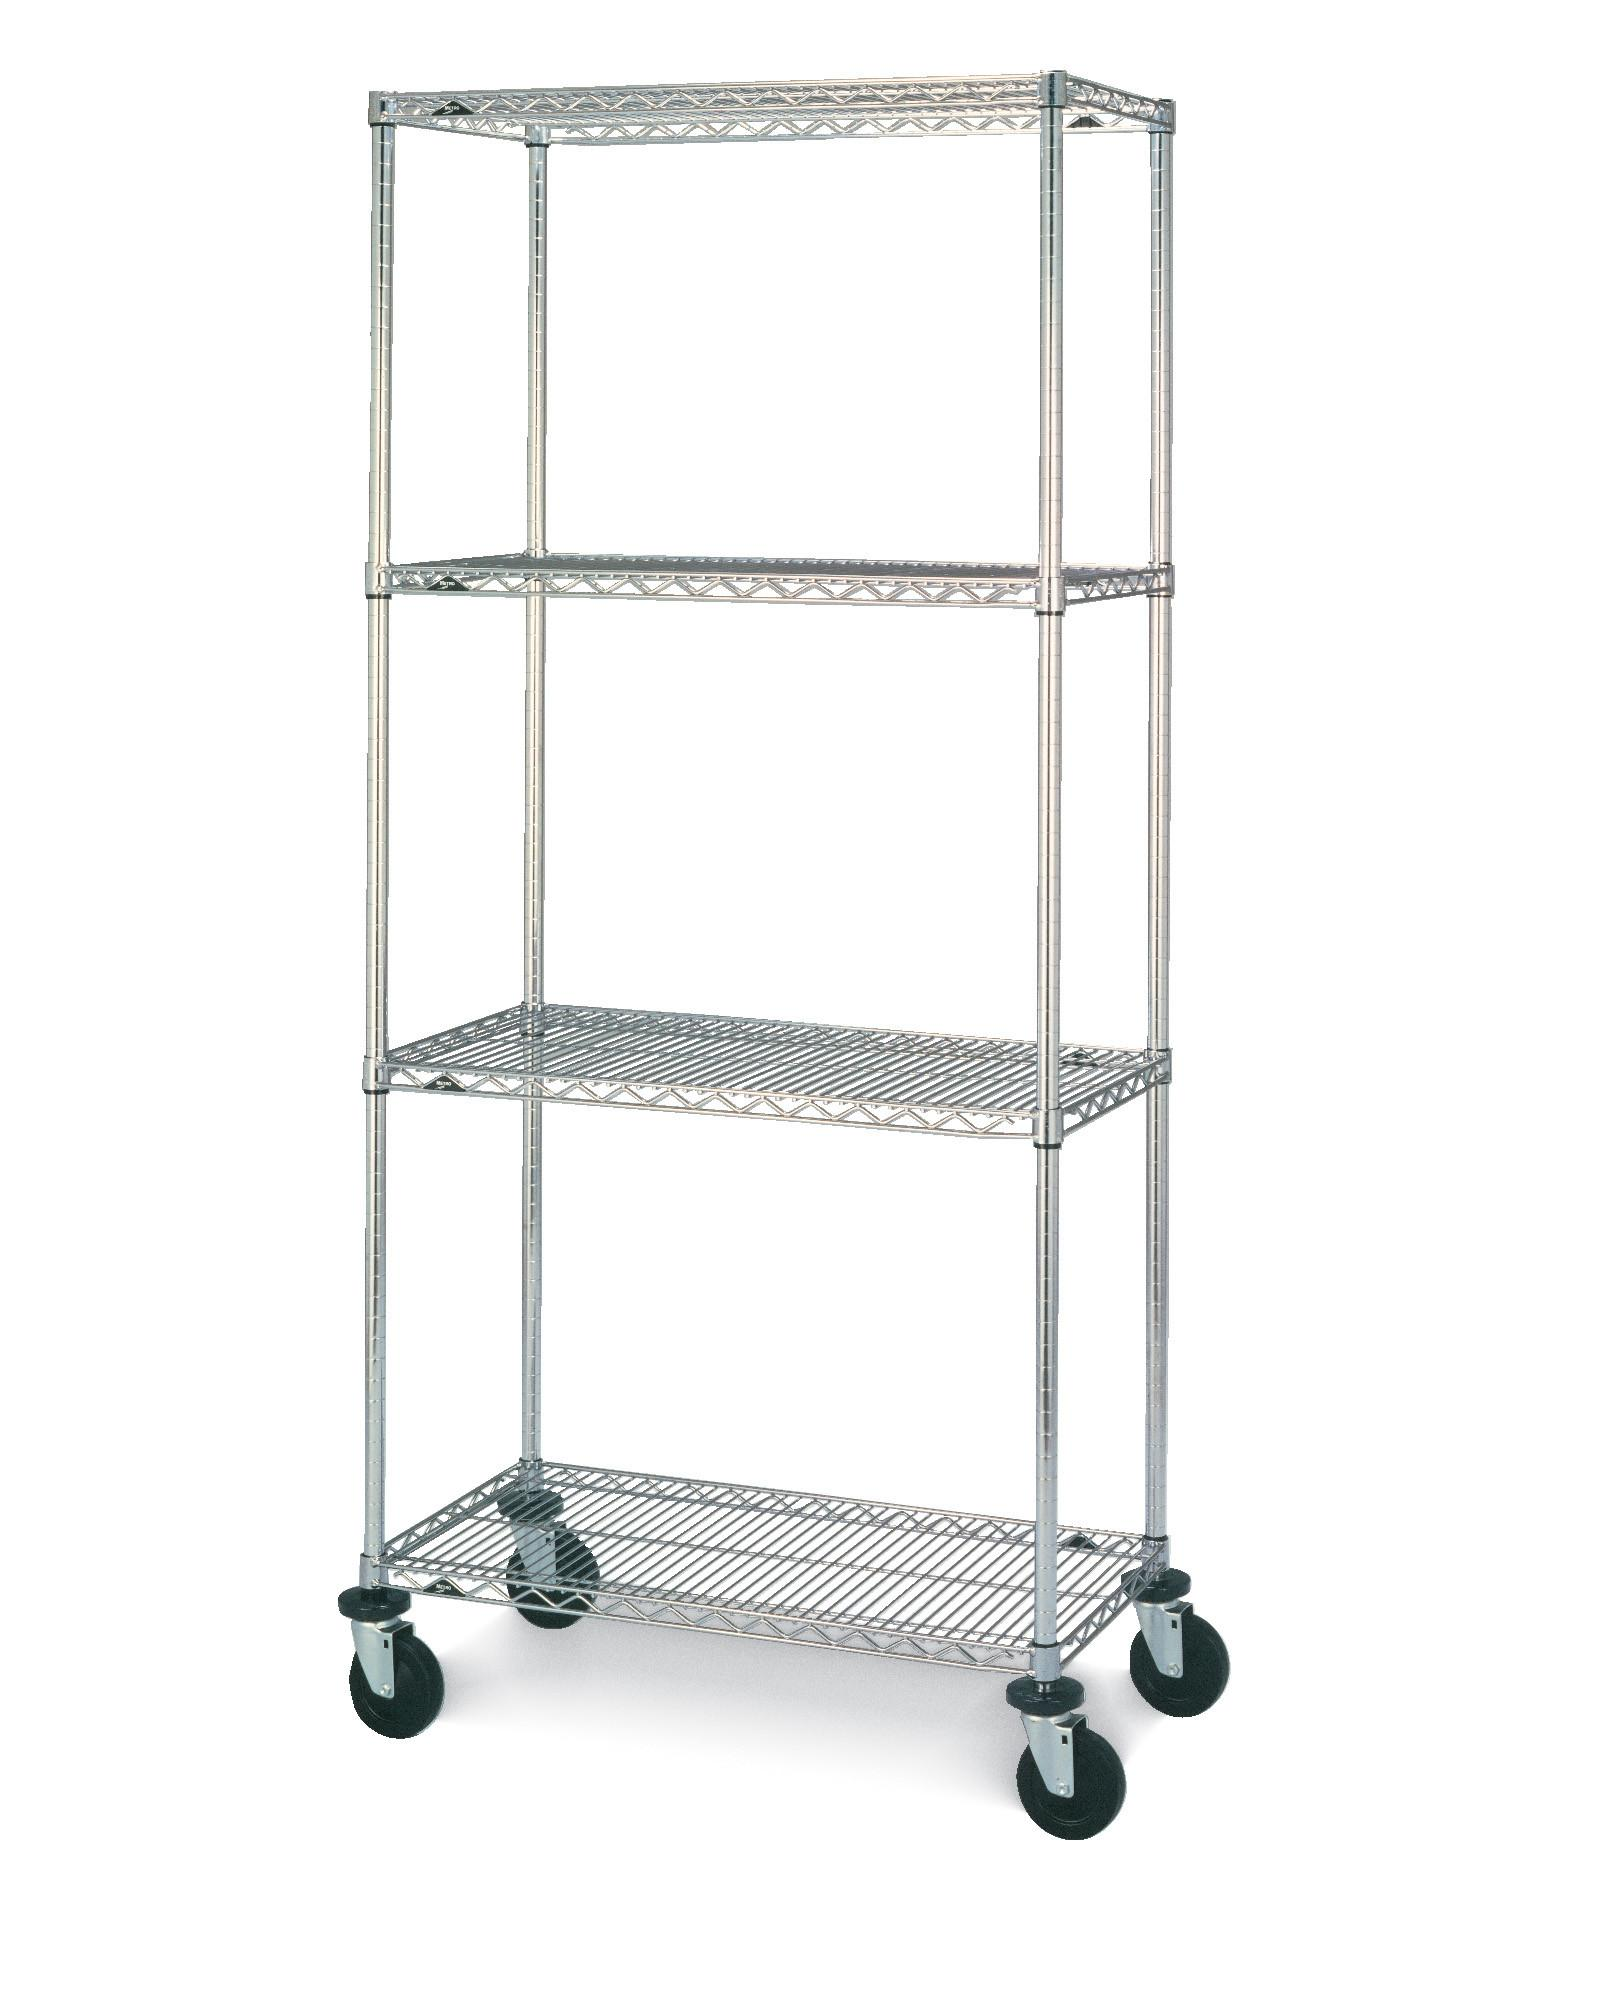 Stainless Steel Wire Shelving Super Erecta